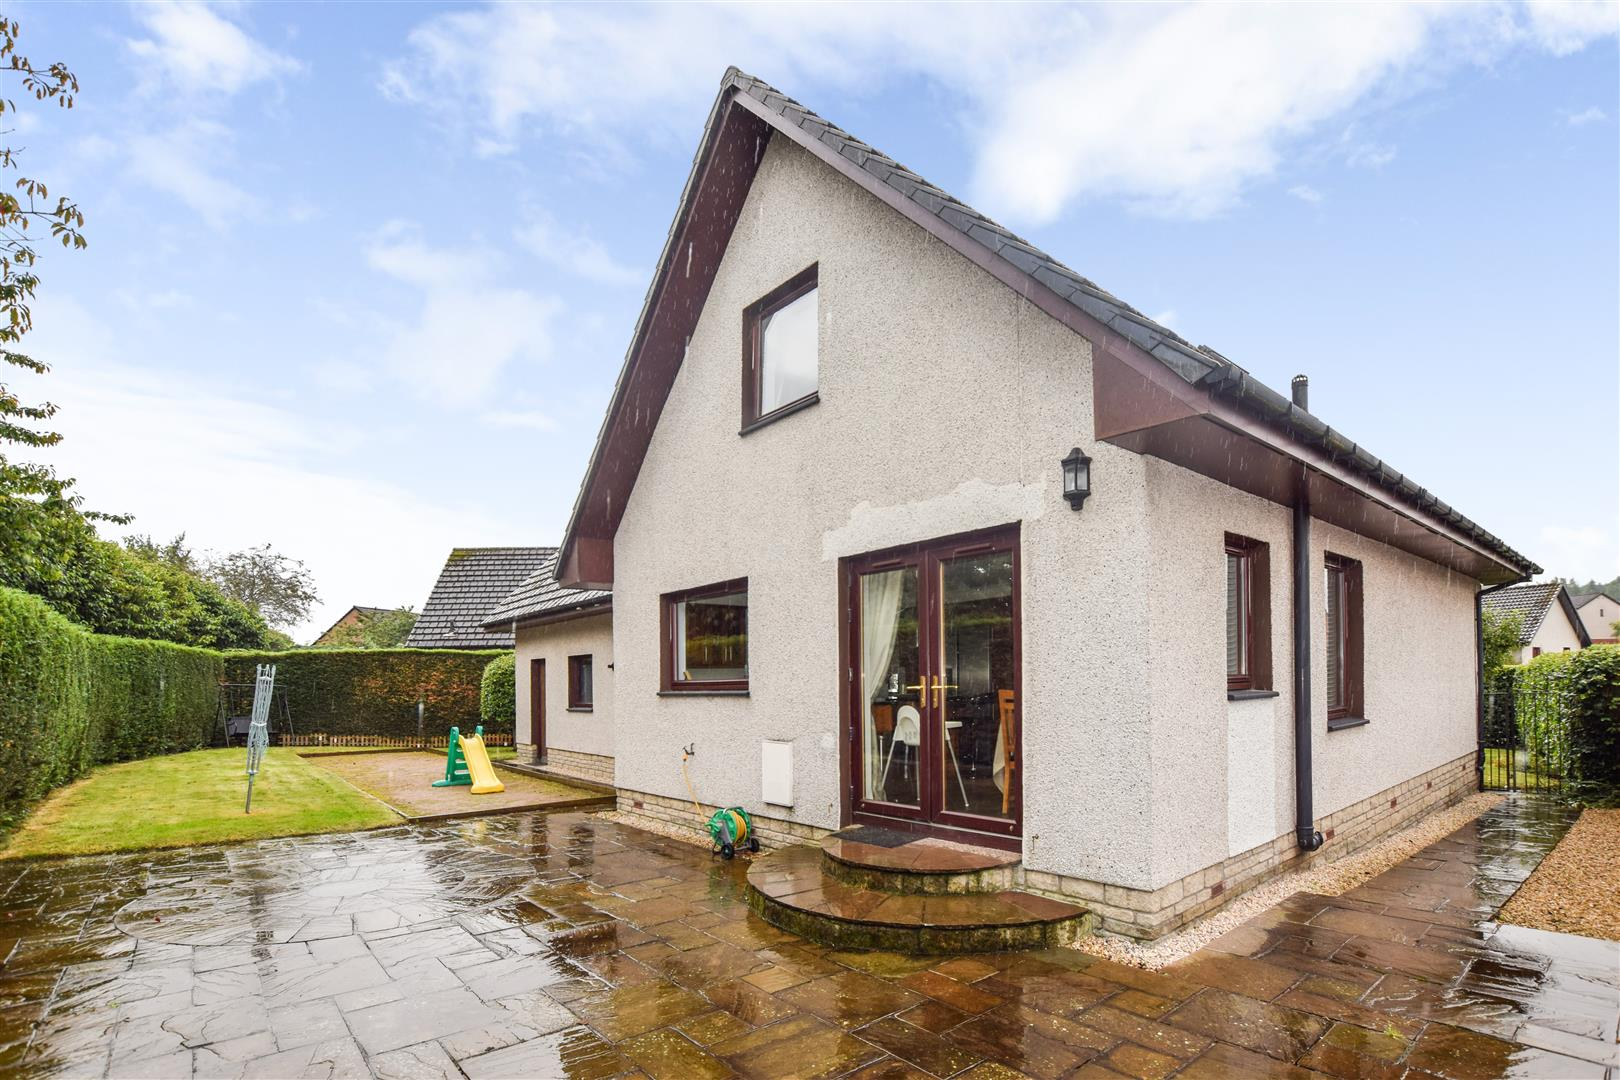 26, Auld House Wynd, Perth, Perthshire, PH1 1RG, UK